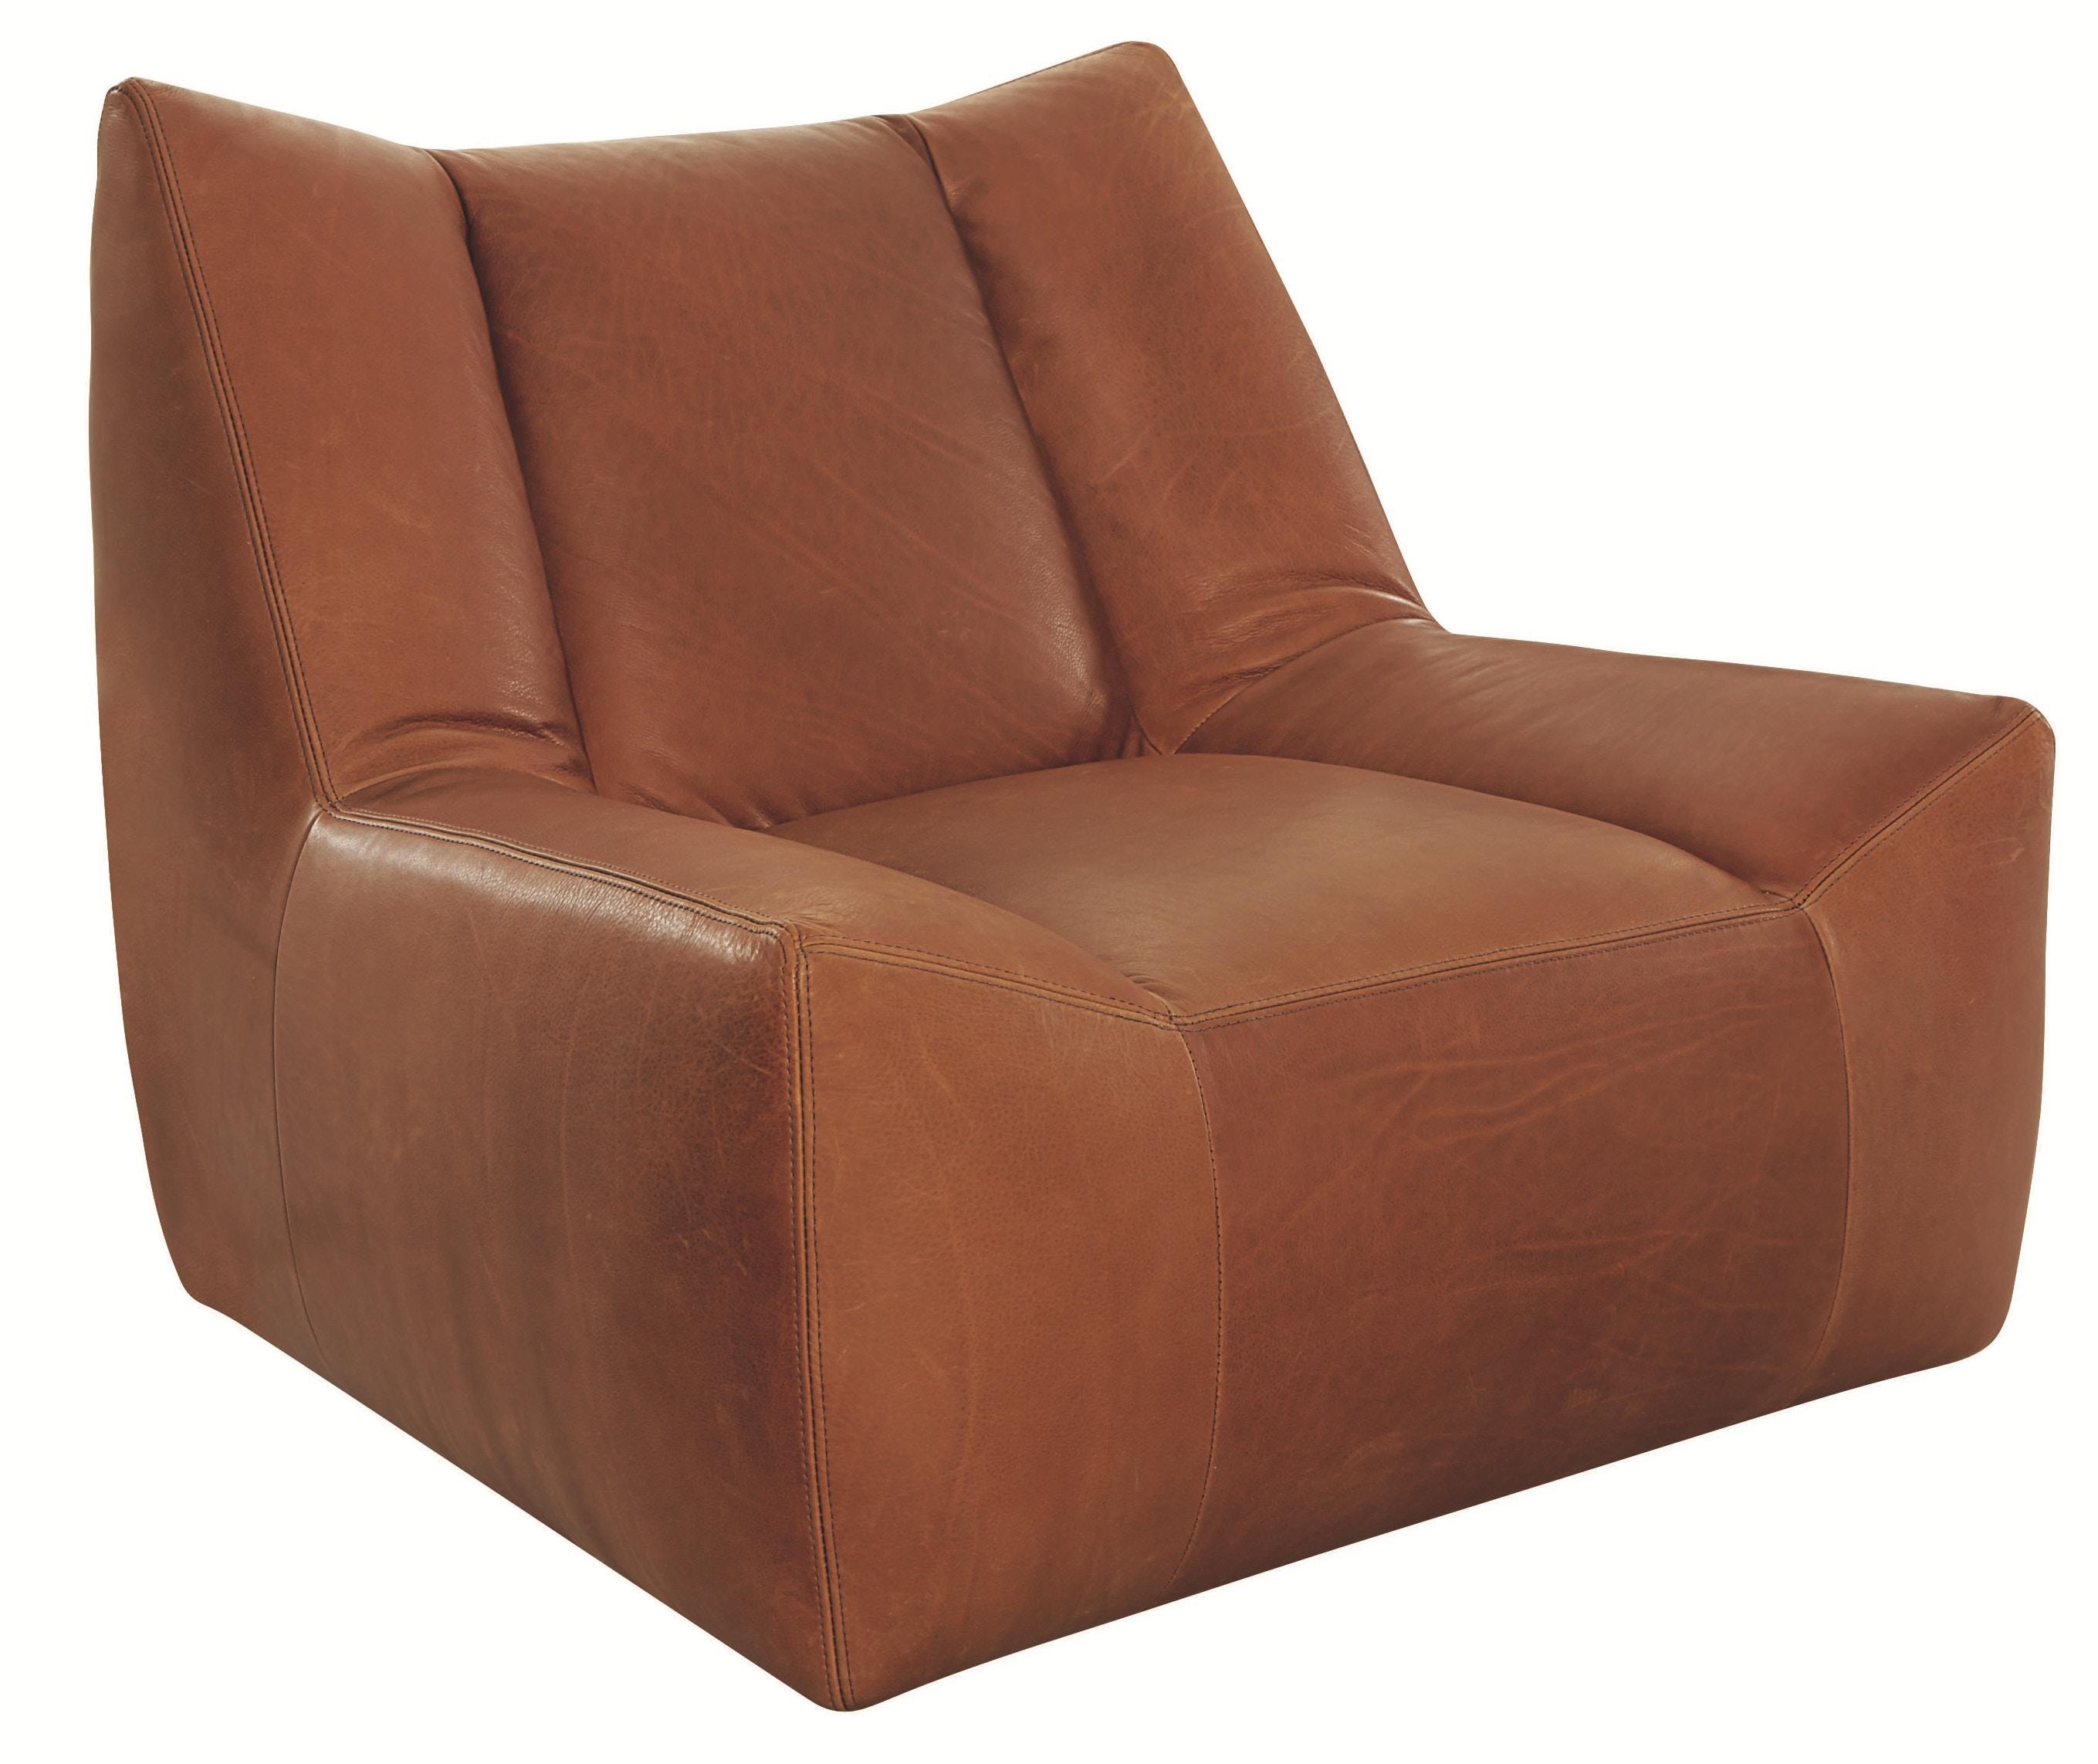 Lee Industries Leather Swivel Chair L1147 01SW